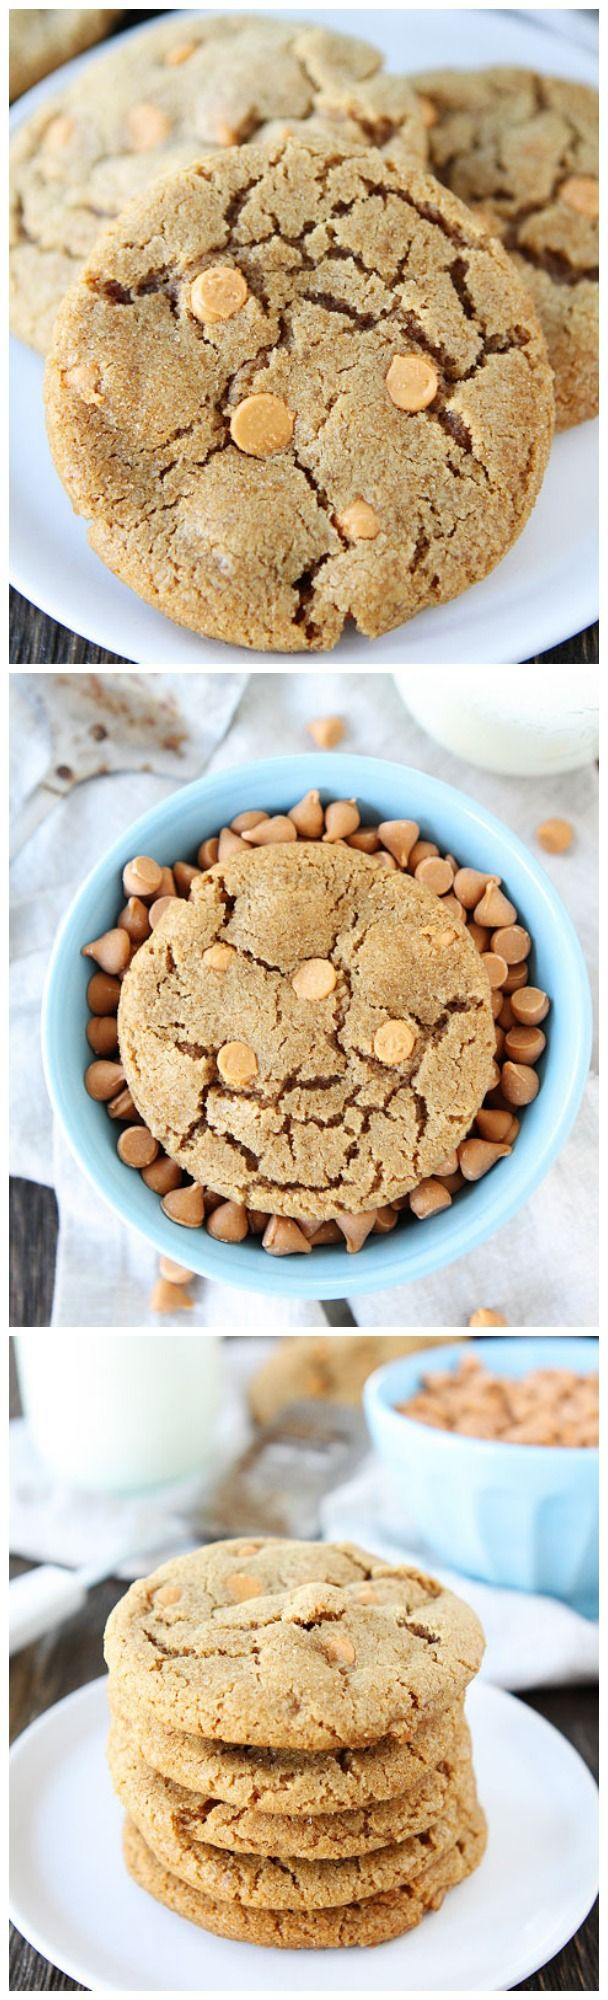 Brown Sugar Butterscotch Cookie Recipe on twopeasandtheirpo... These cookies are a real treat!